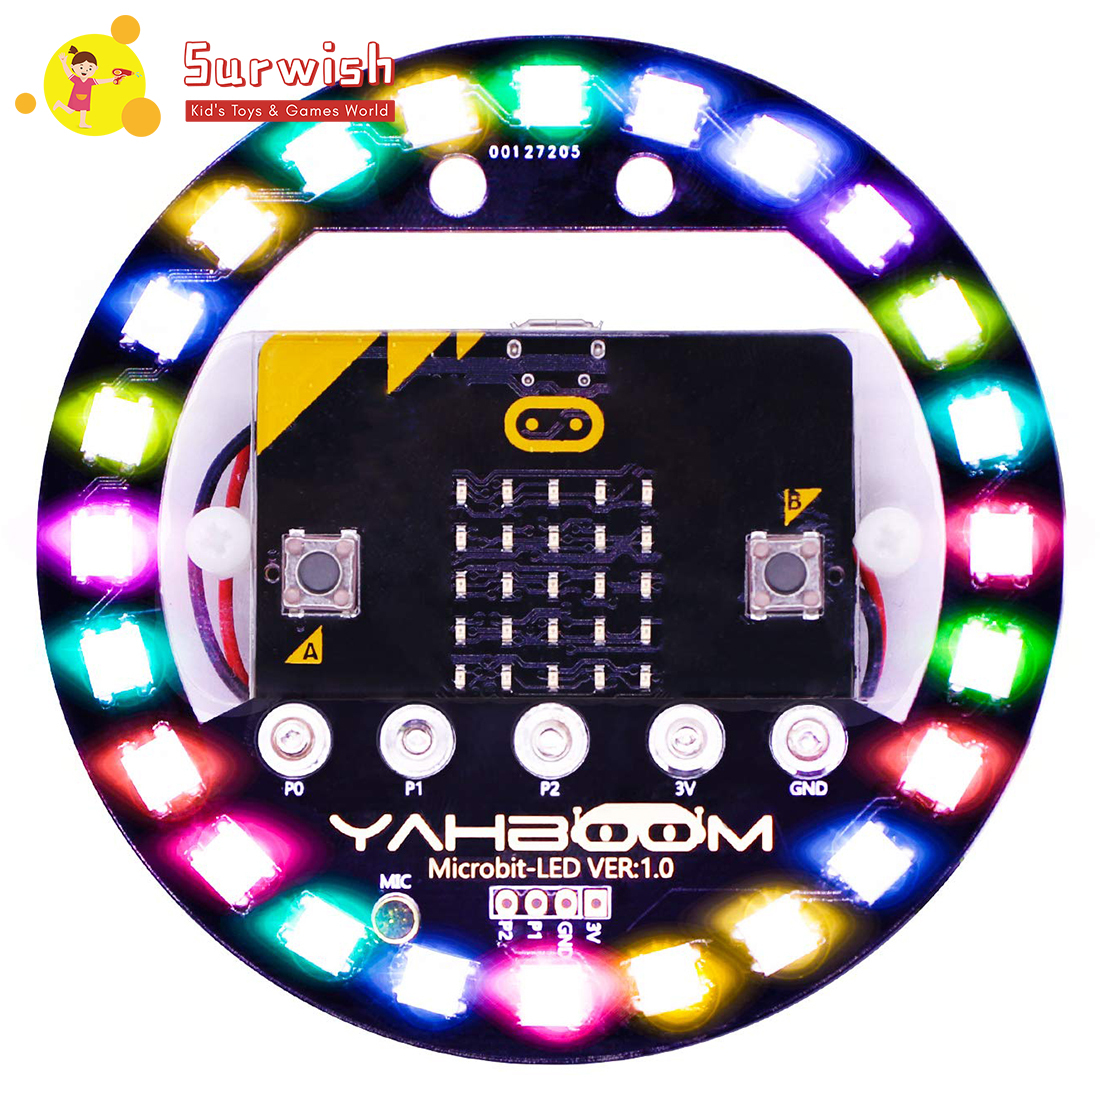 2 Type Micro:Bit Halo Programmable Expansion Board Compatible With Arduino Voice Control Colorful LED RGB Lights